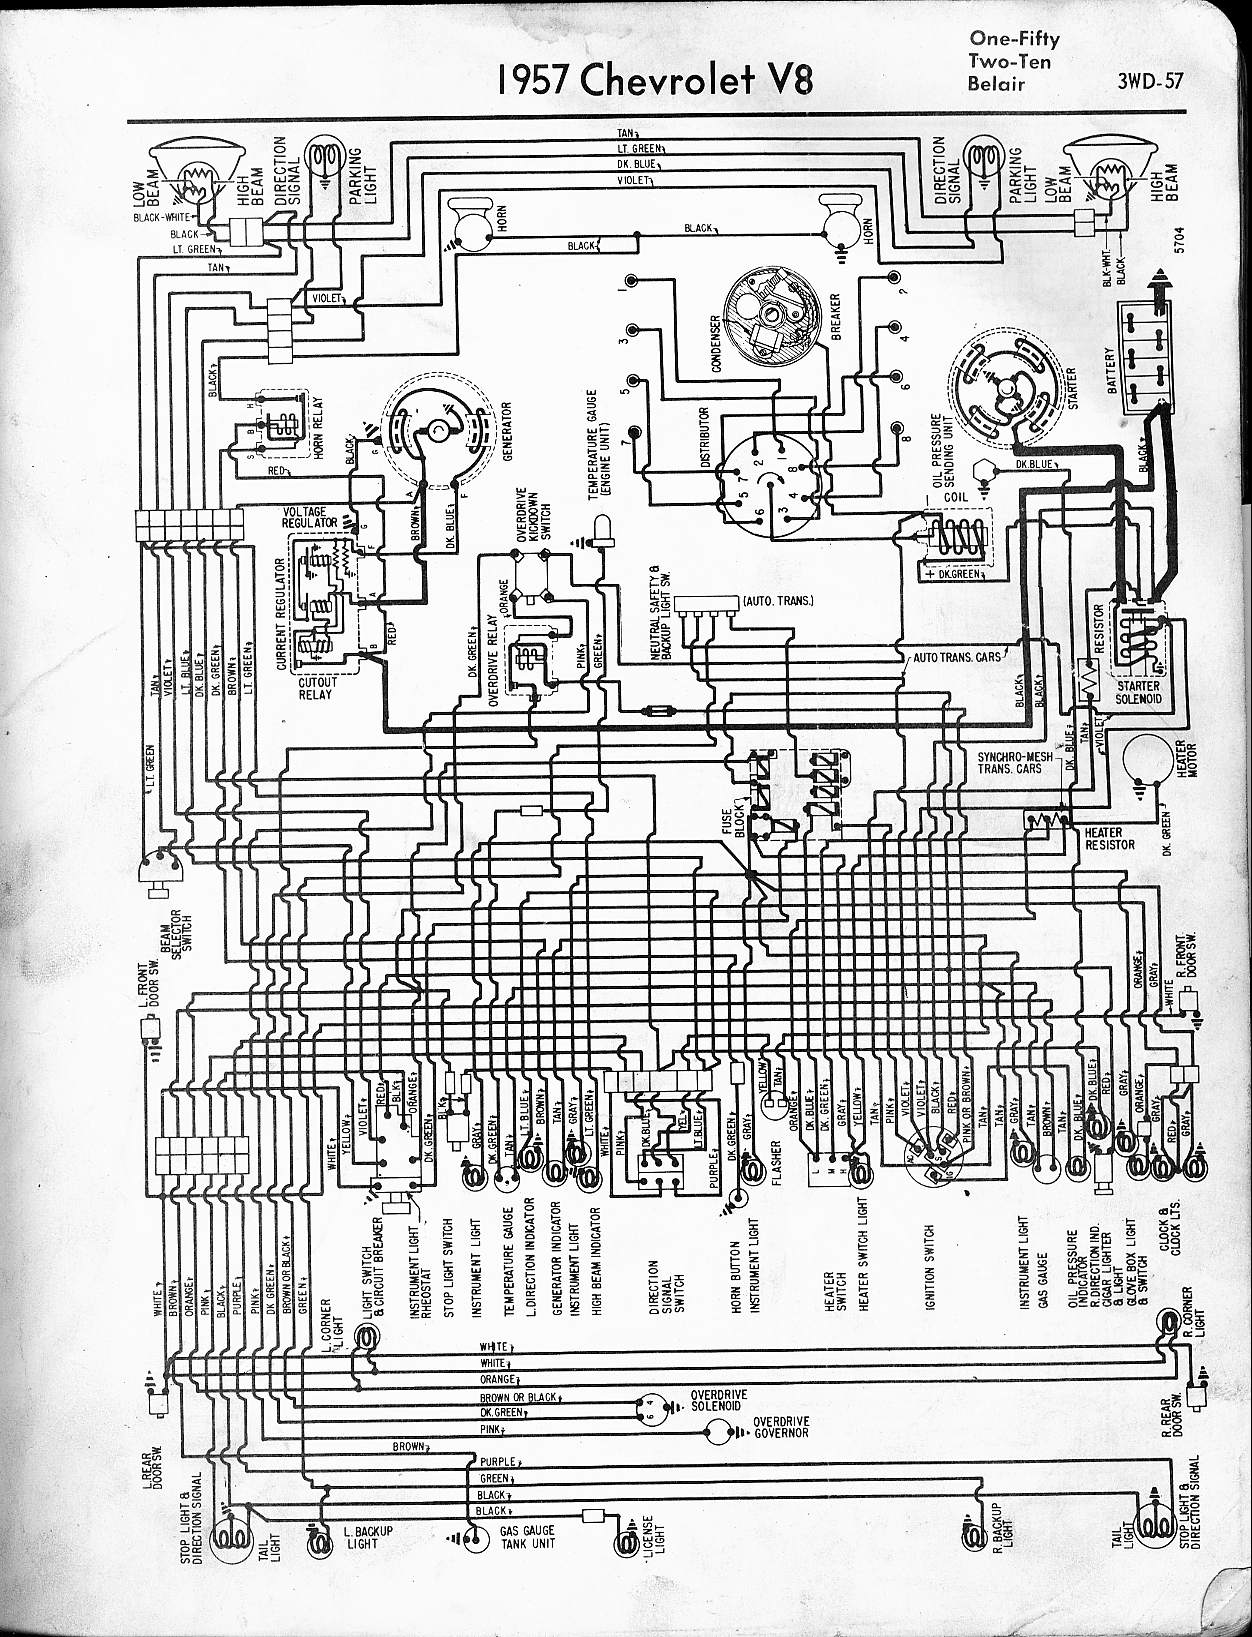 1955 Chevy Truck Headlight Switch Wiring Diagram Just Wiring Data GM  Headlight Switch Wiring Diagram 1955 Chevy Headlight Wiring Diagram